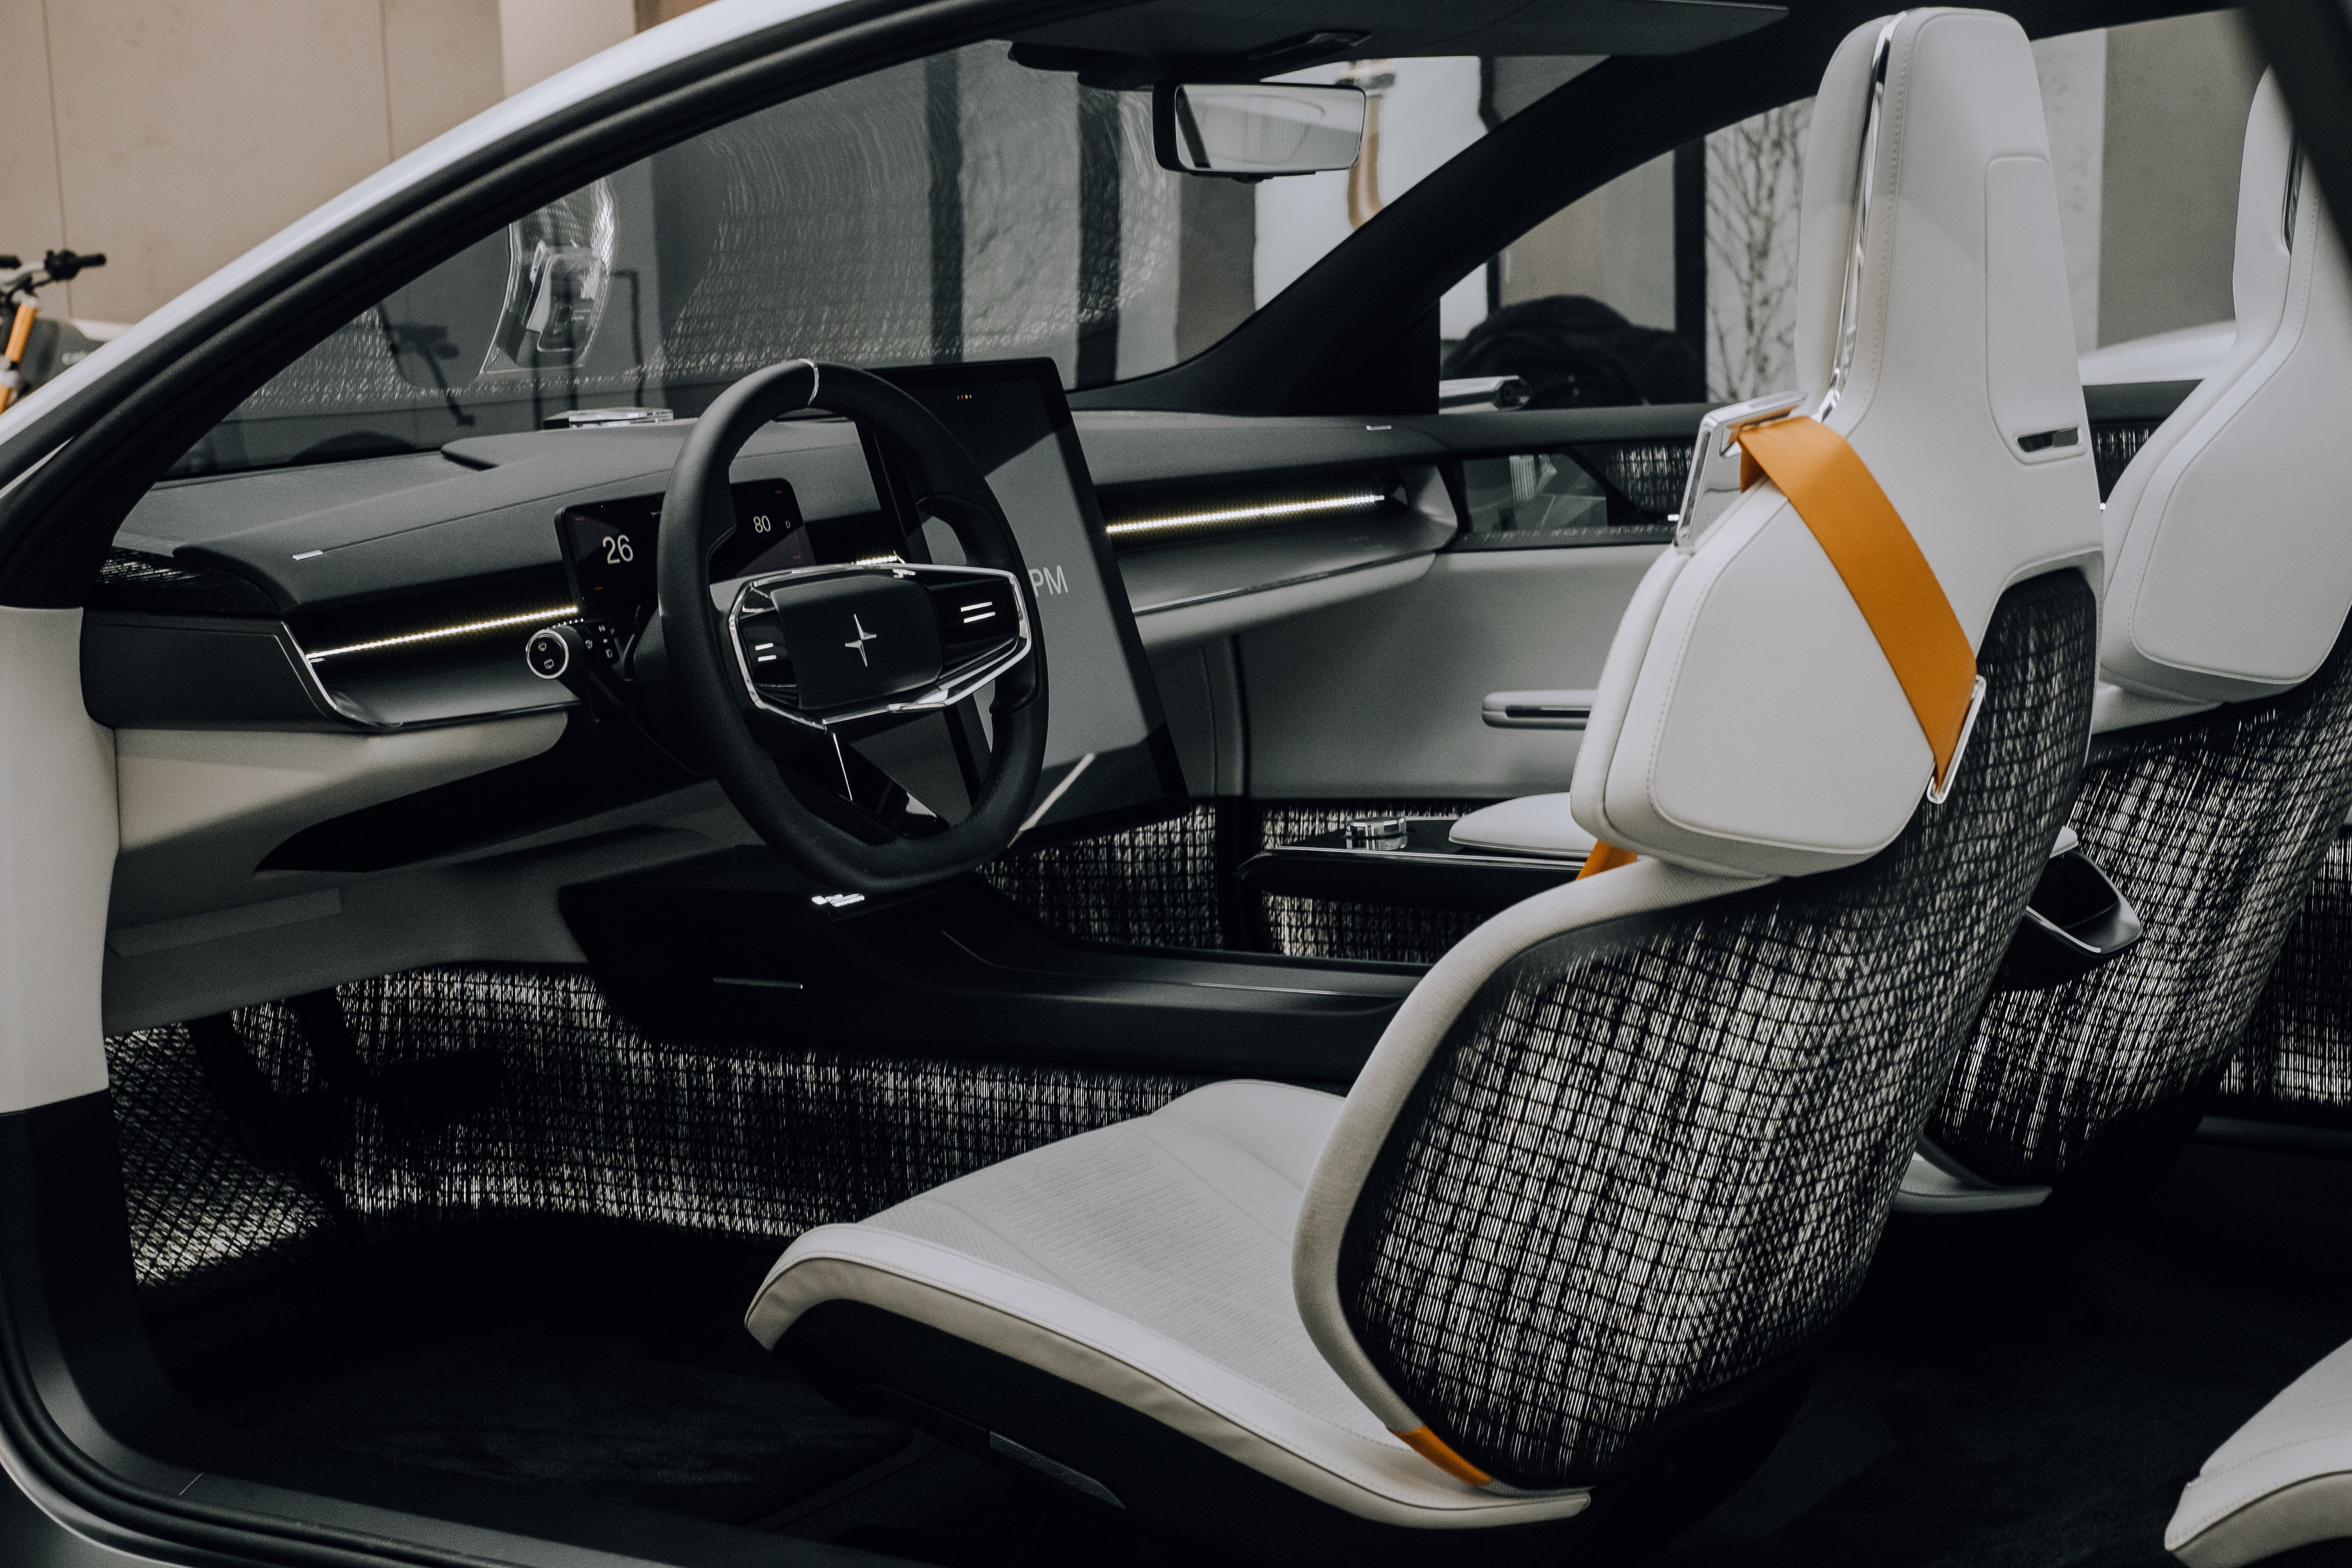 The interior of the Polestar Precept - tight lines, futuristic design and so much space! Instagram: @Kenny.leys